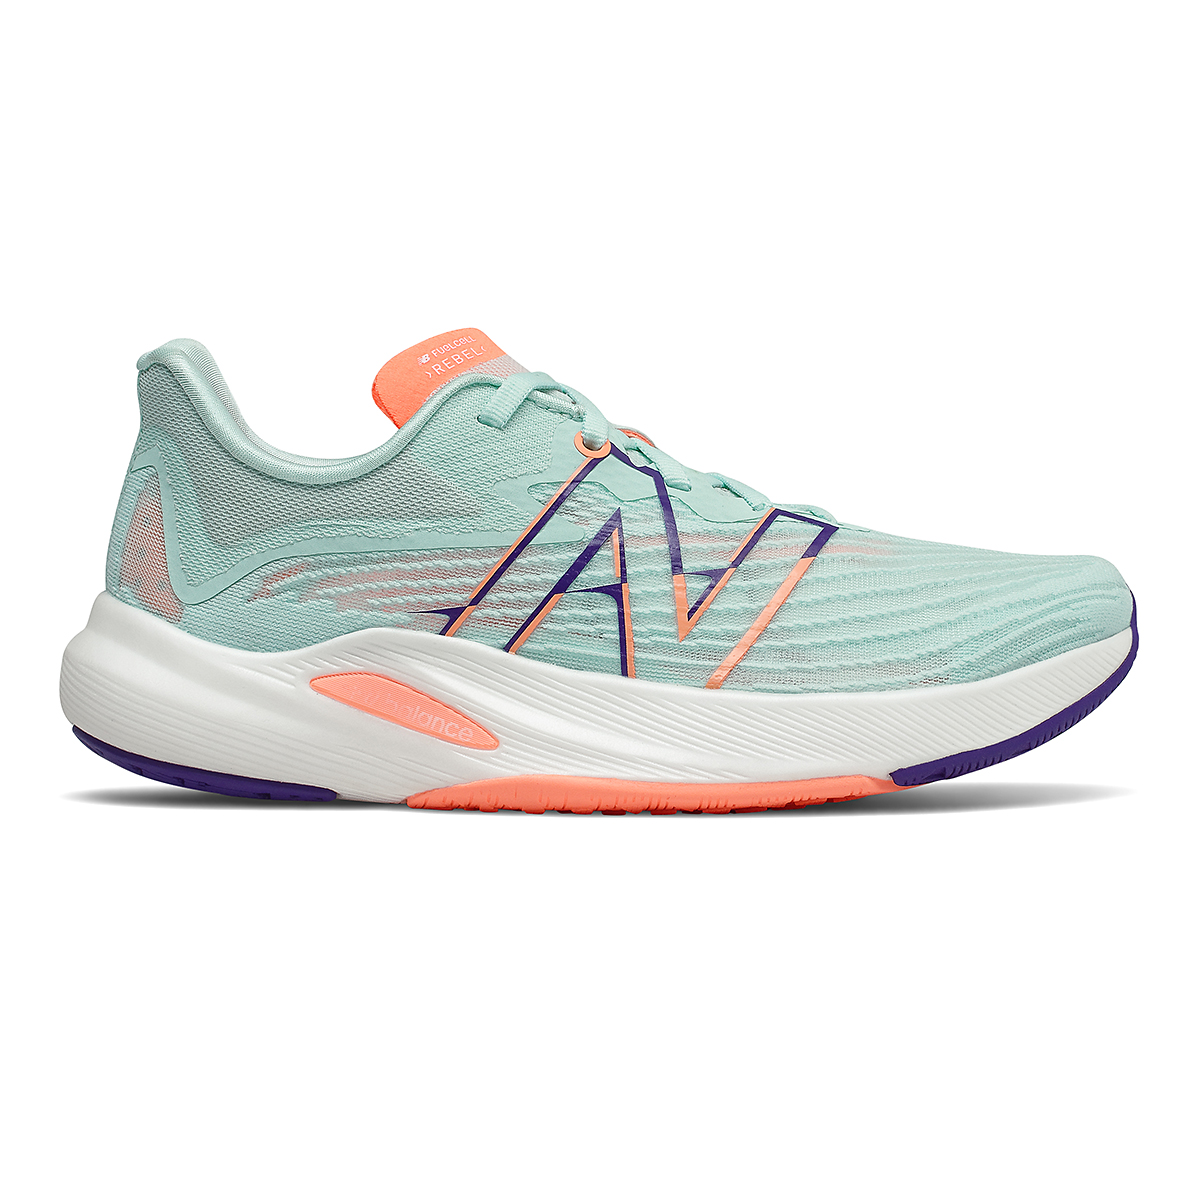 Women's New Balance Fuelcell Rebel V2 Running Shoe - Color: White Mint/Citrus Punch - Size: 7 - Width: Regular, White Mint/Citrus Punch, large, image 1